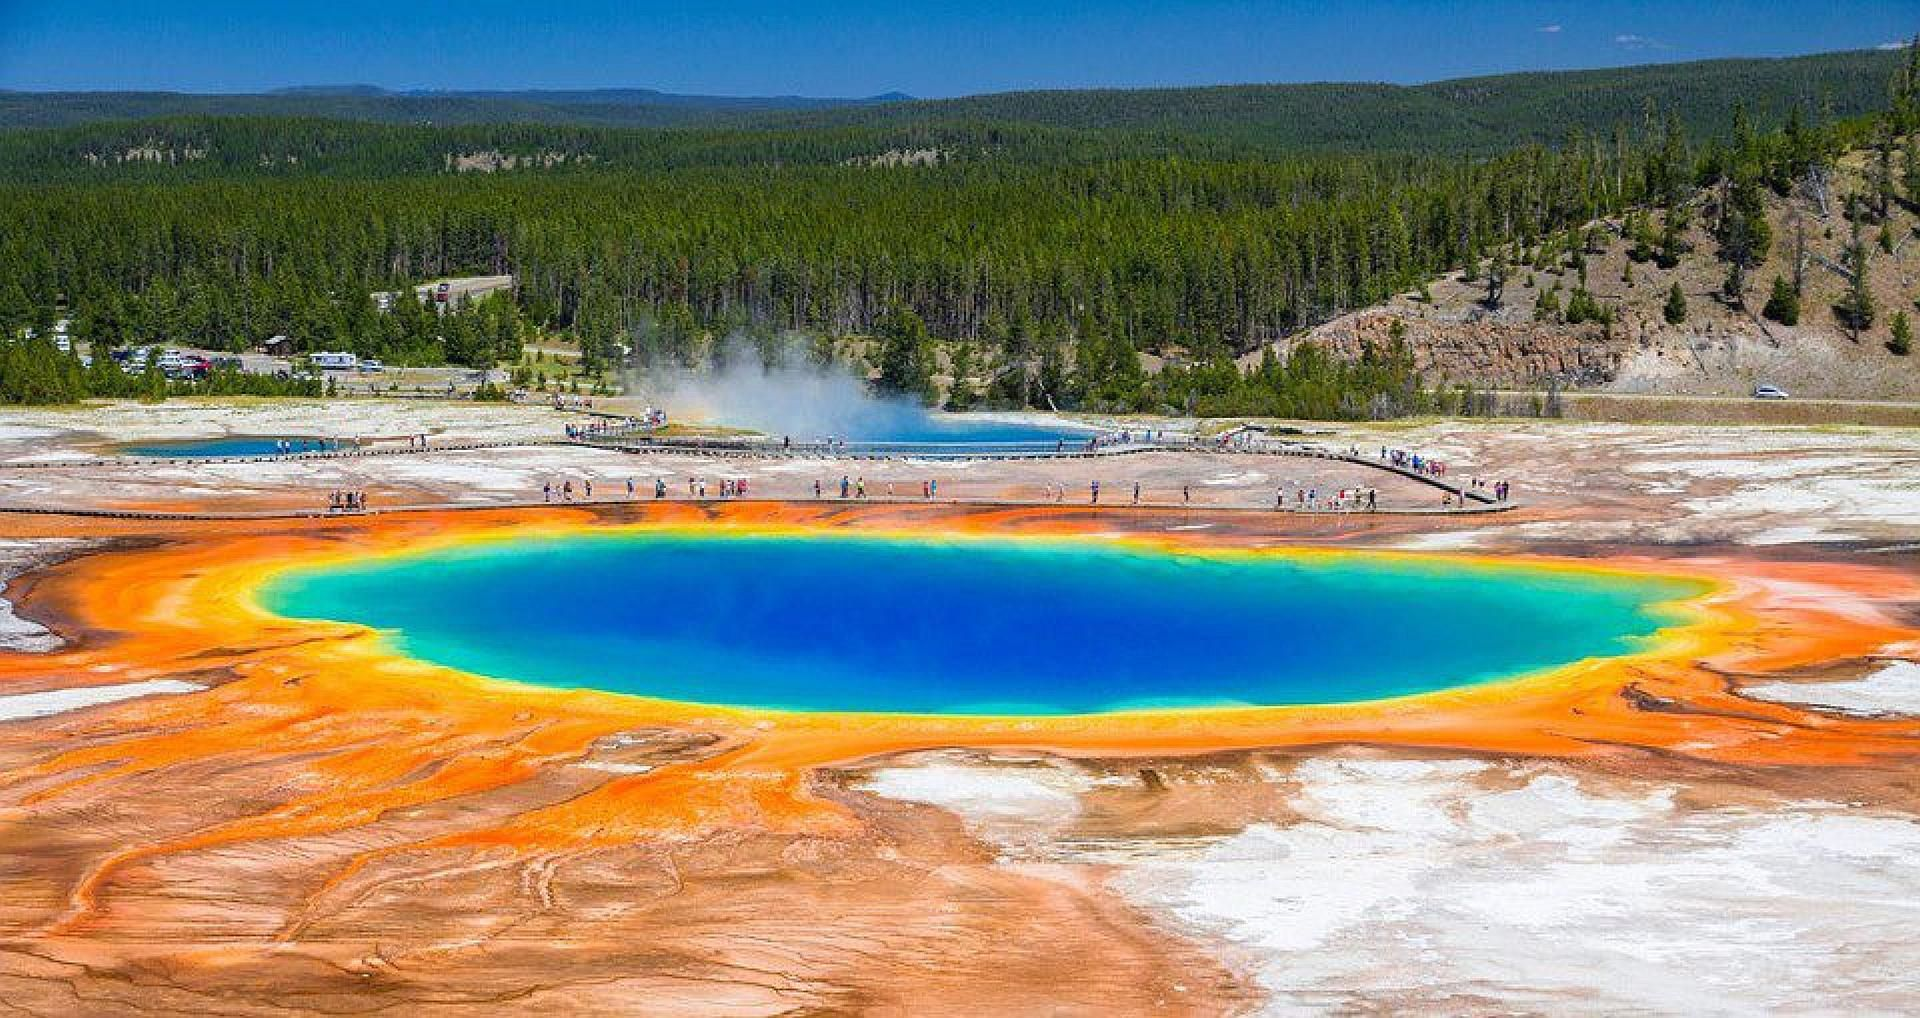 12 Most Shocking Natural Phenomena That Occurred On Earth